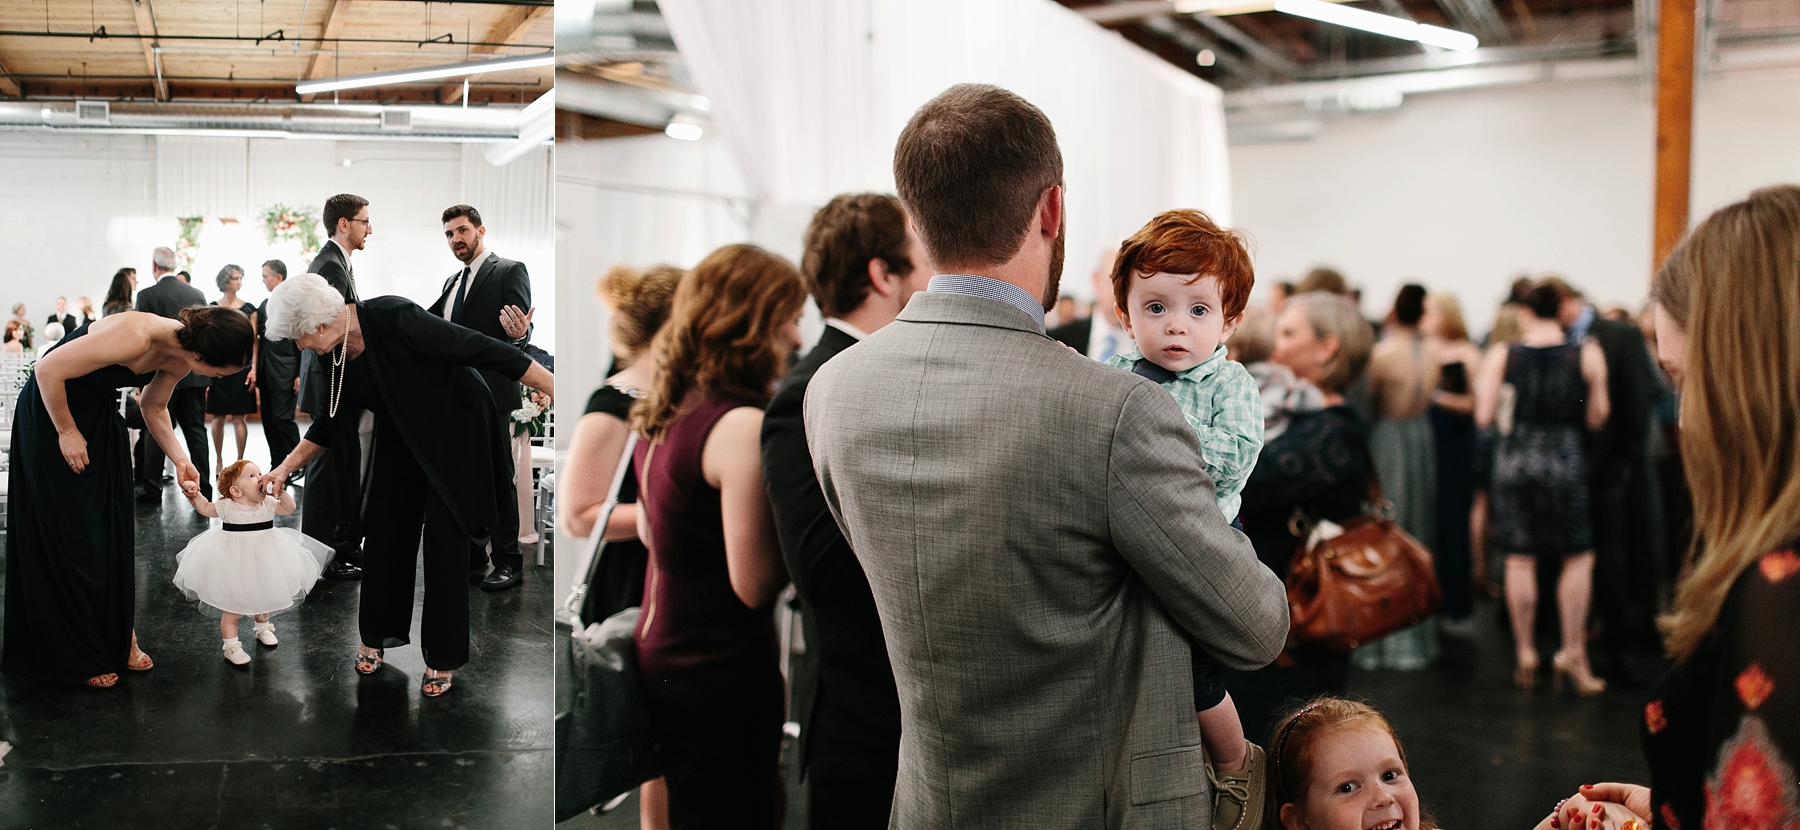 Emily + Caleb _ an elegant, intentional, industrial style wedding with navy + gold accents at 6500 in Dallas, TX by North Texas Wedding Photographer Rachel Meagan Photography _ 108